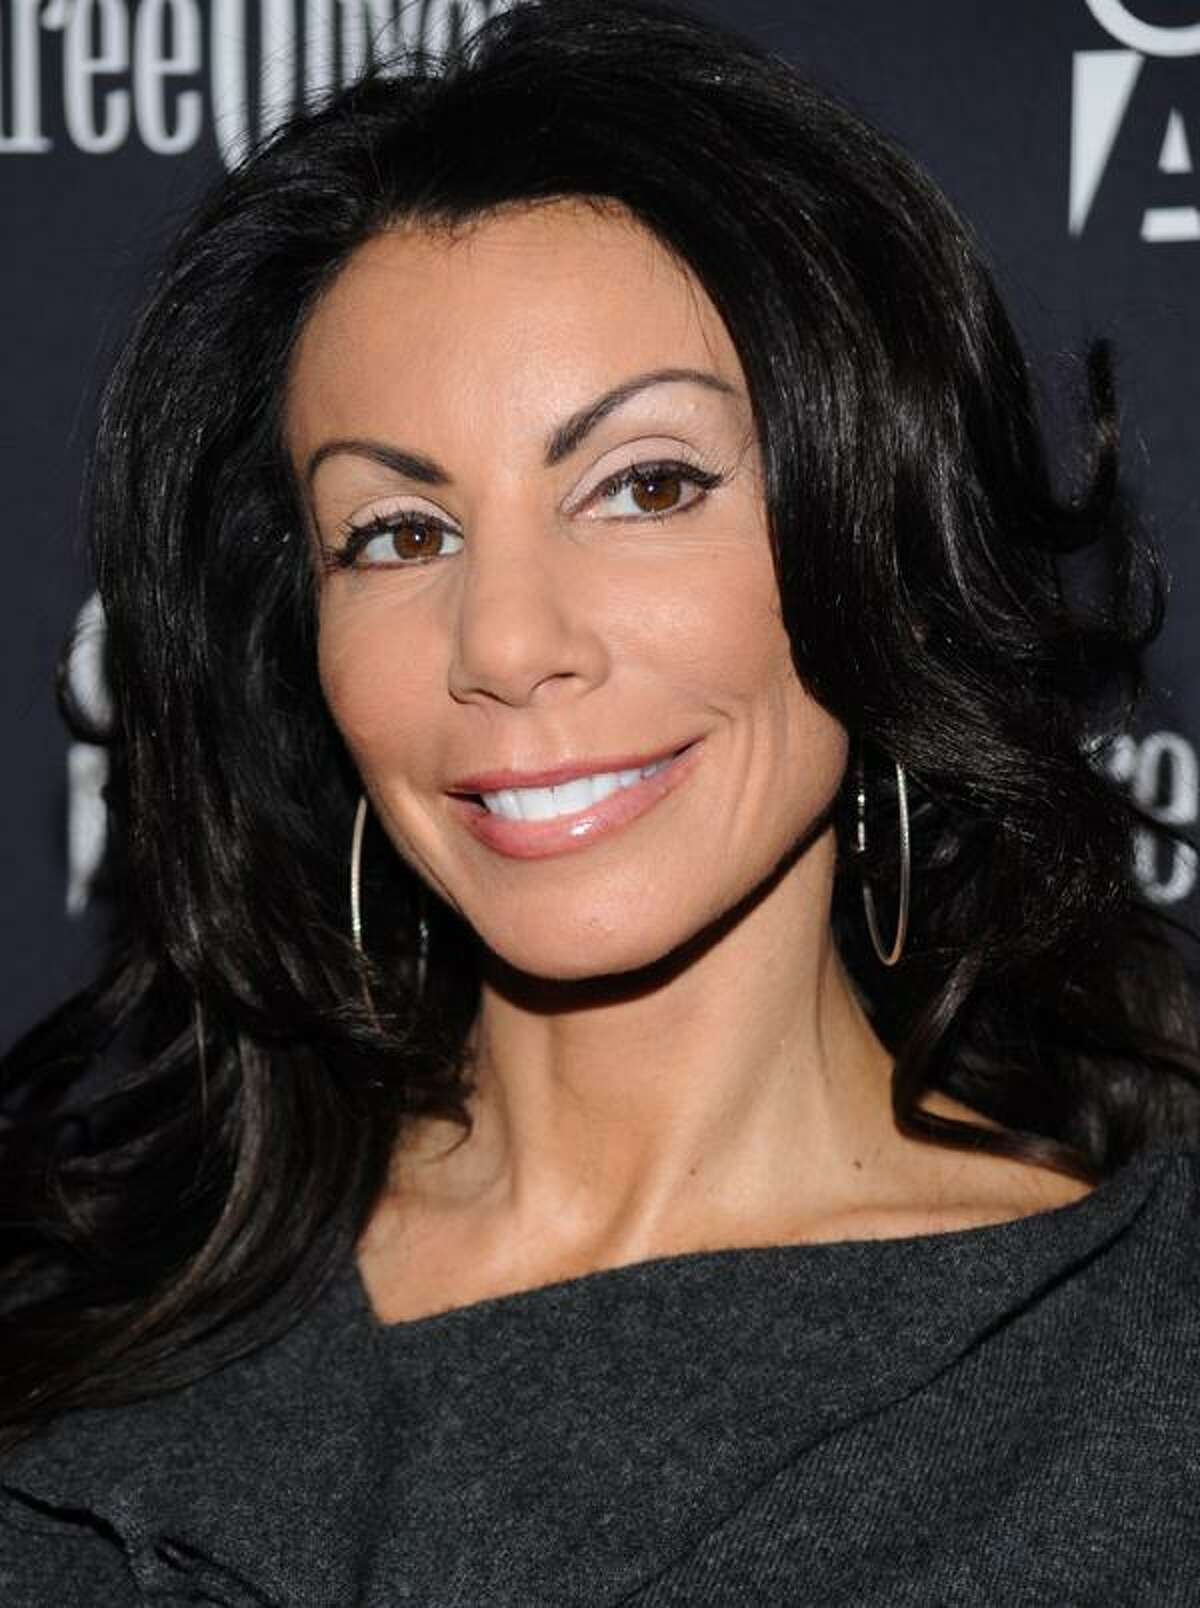 """In this Jan. 5, 2010, file photo, TV personality Danielle Staub attends the premiere of """"Youth In Revolt"""" in New York. (AP)"""